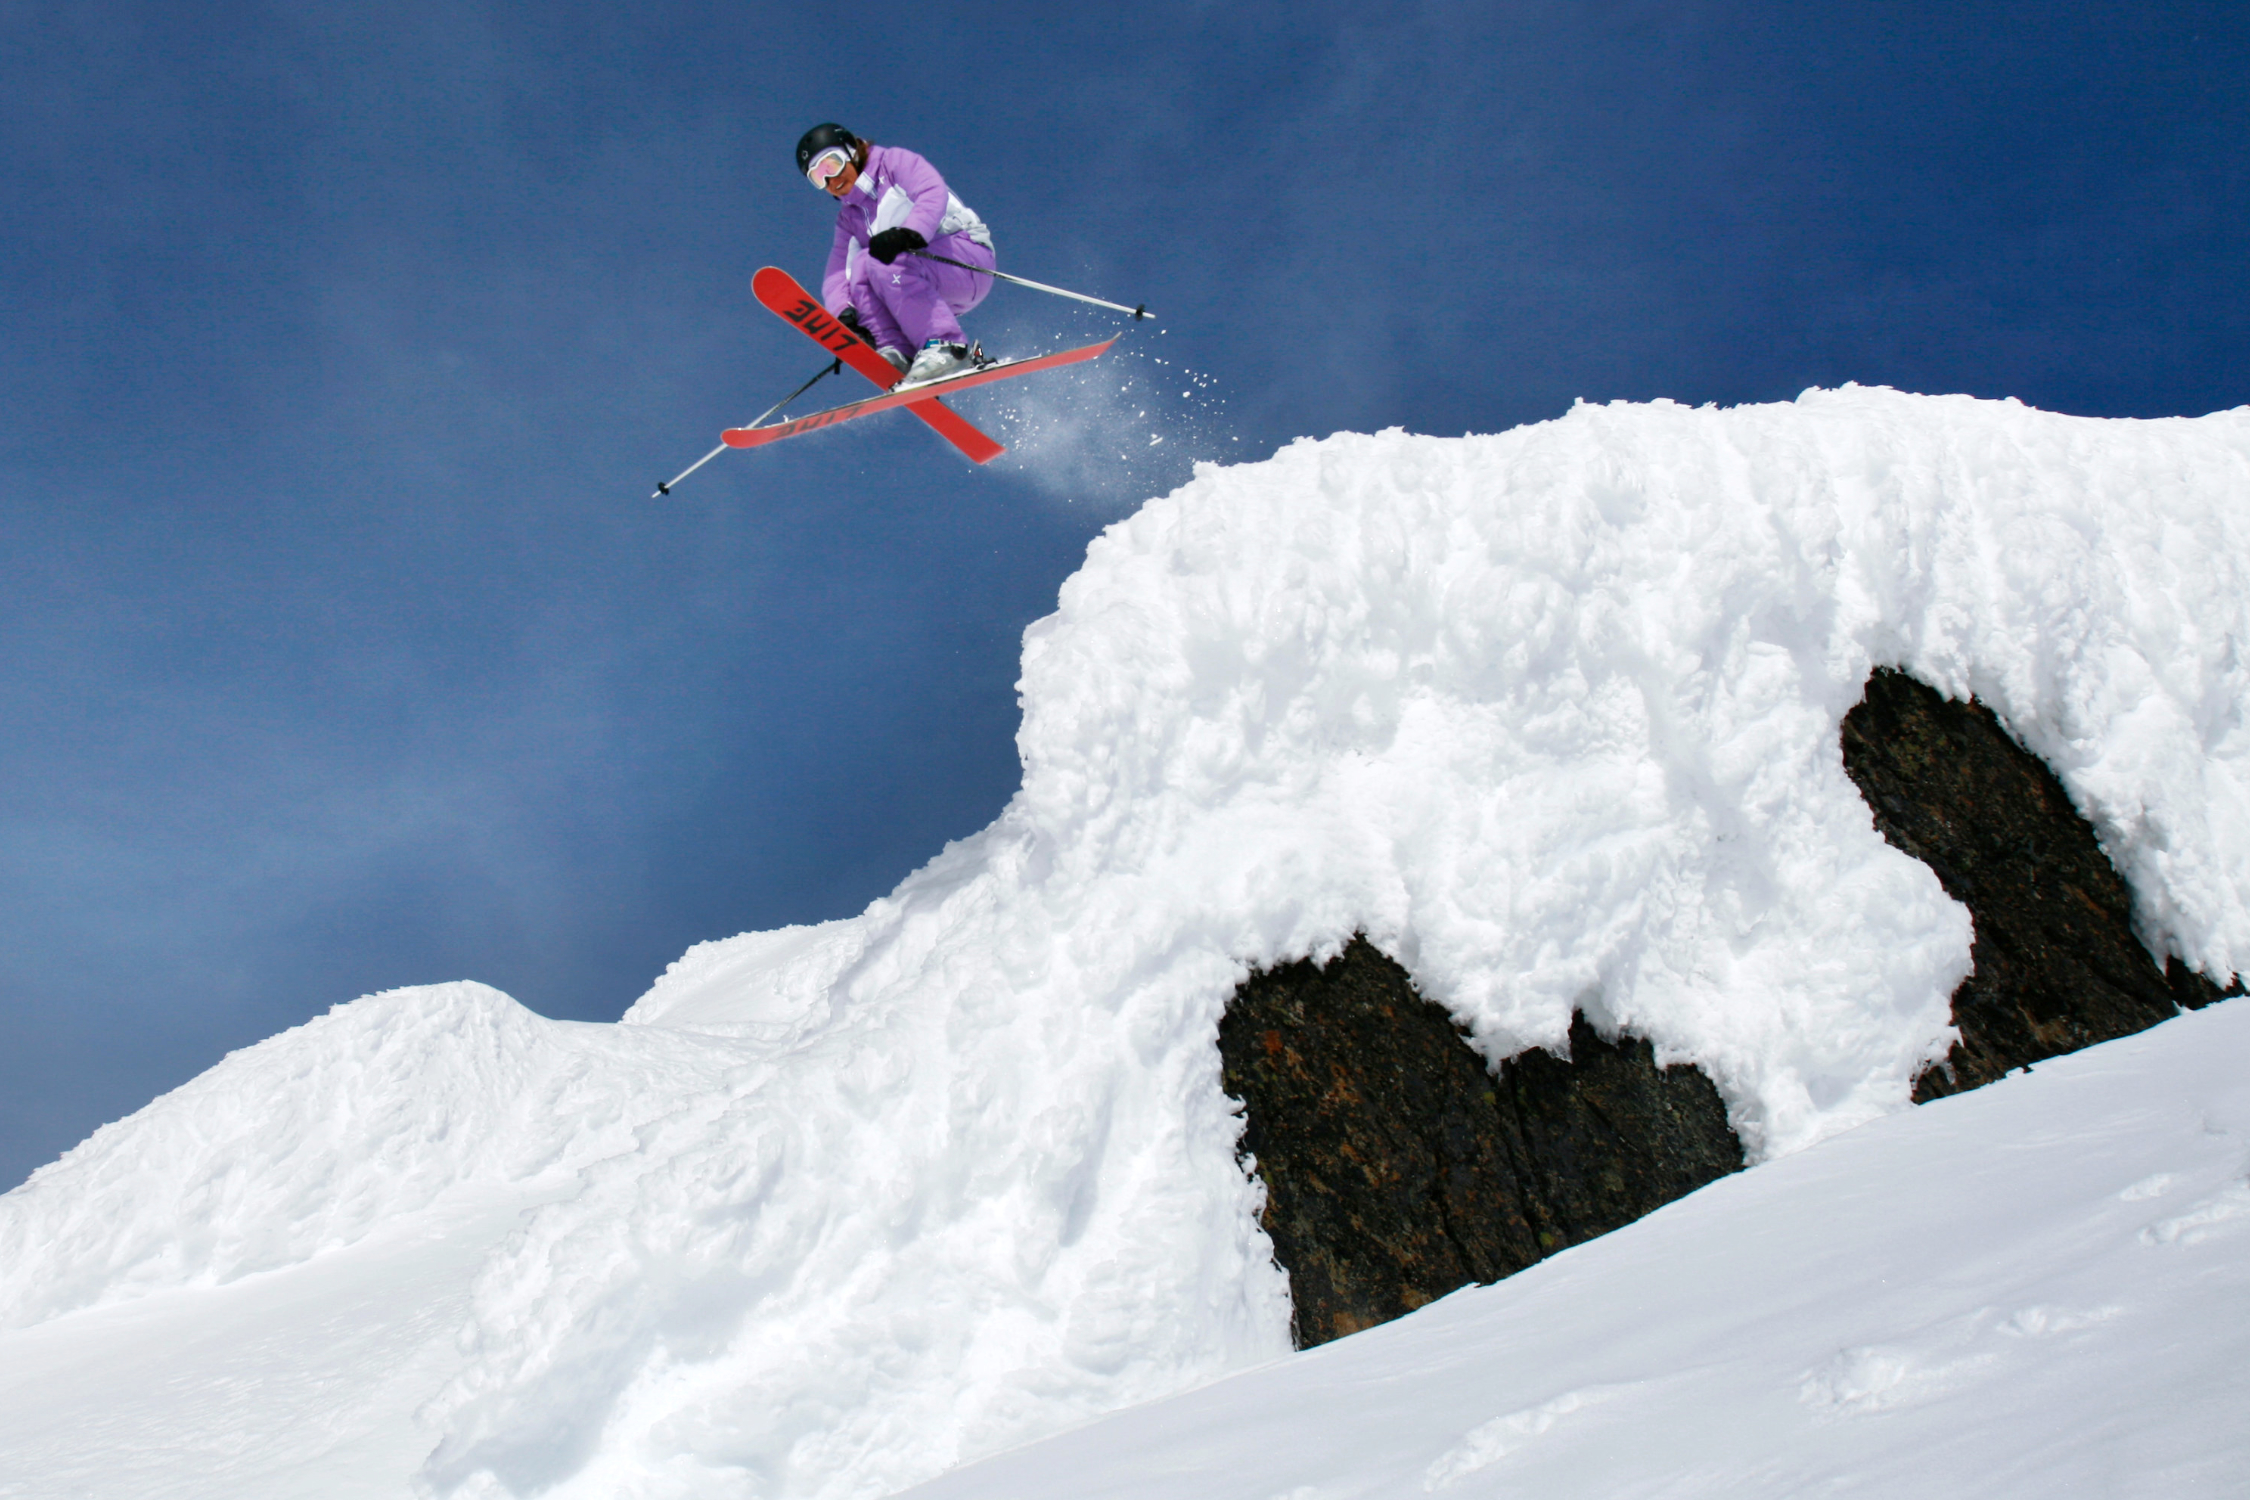 Skier Dropping In